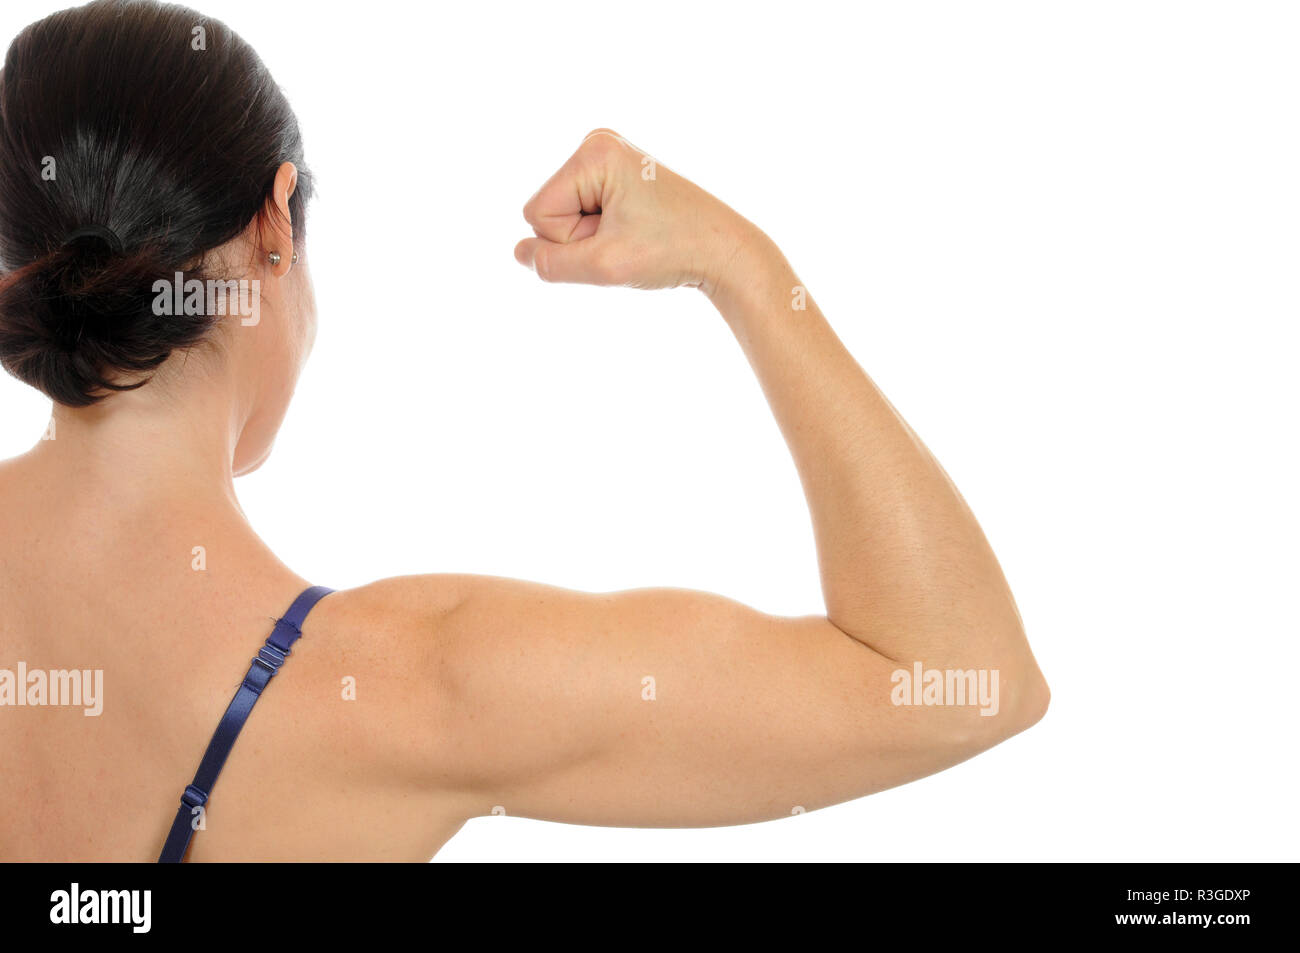 muscles / muscles - Stock Image